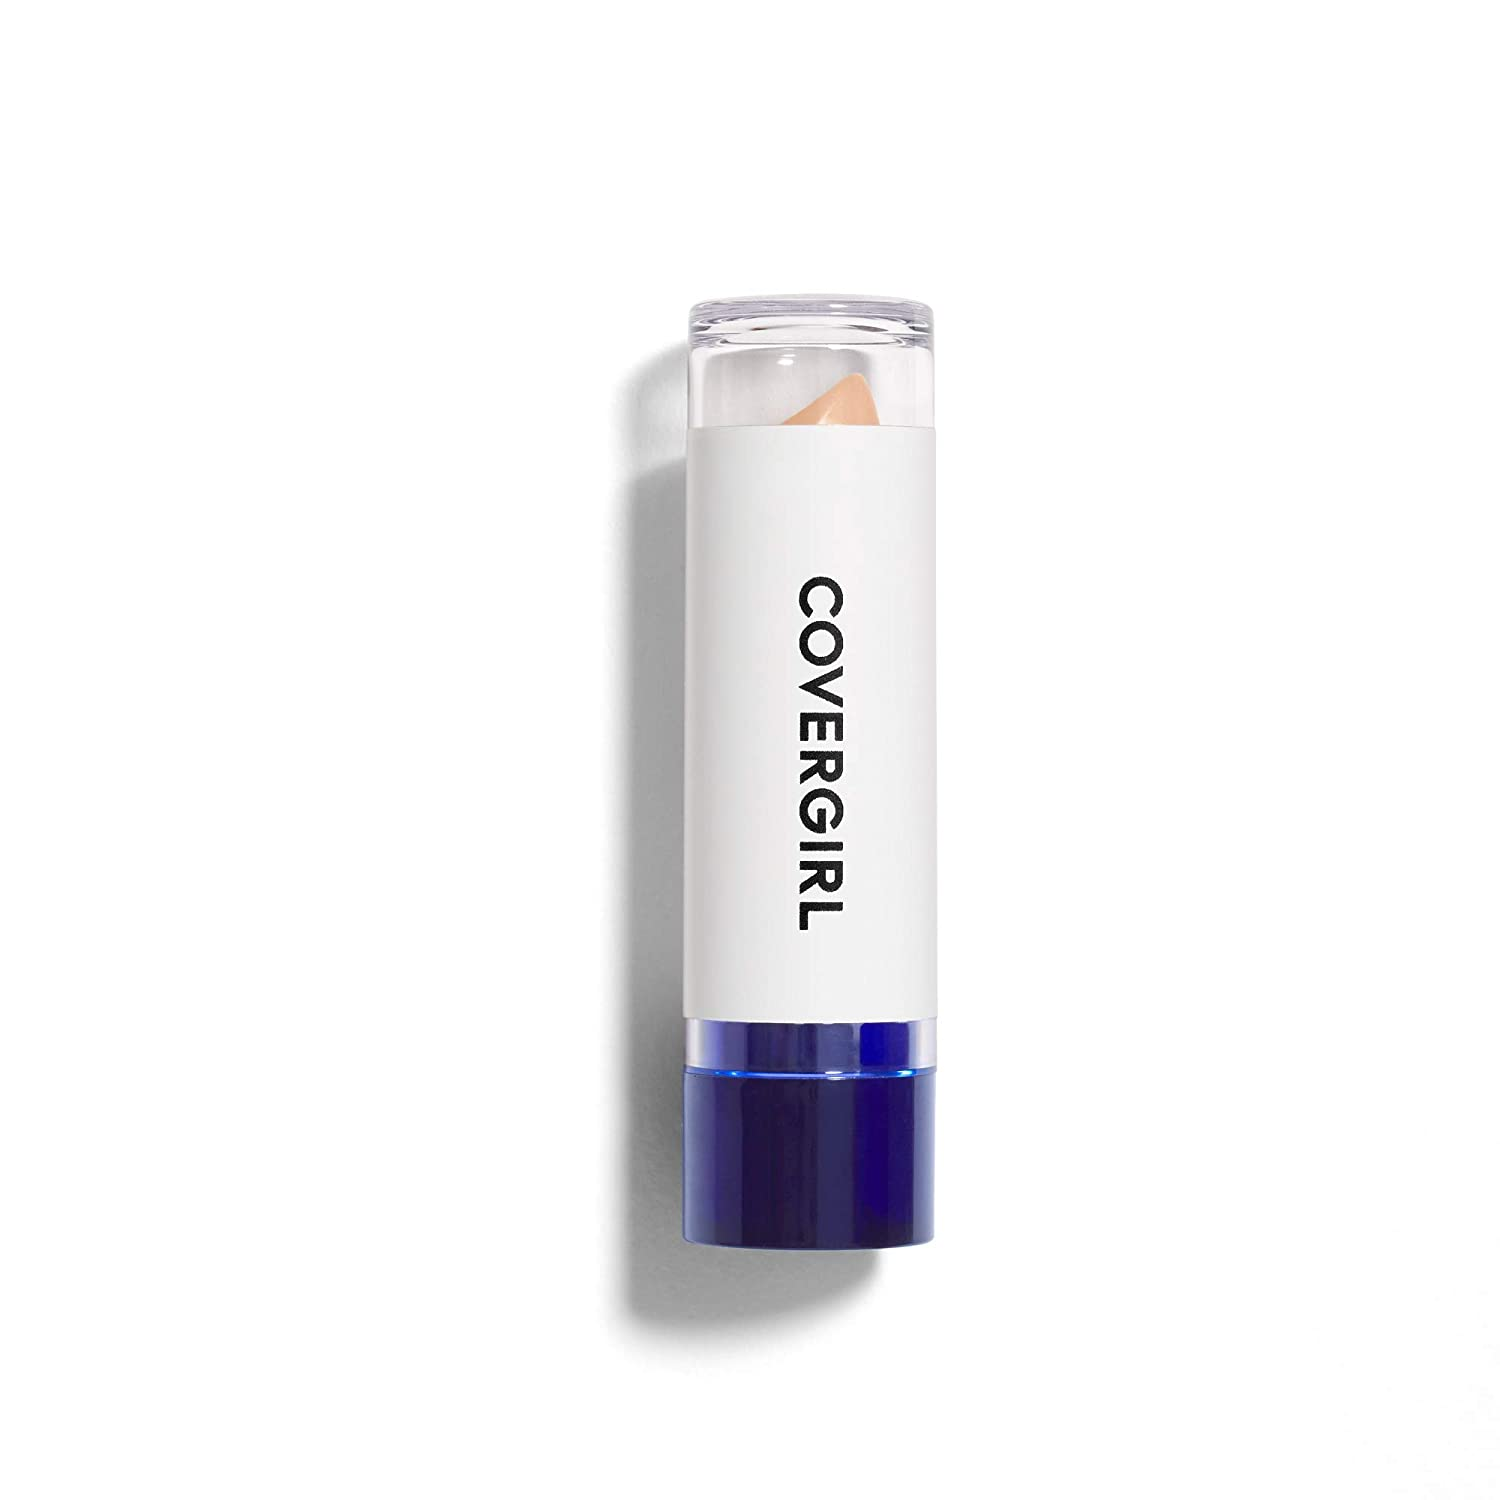 COVERGIRL Smoothers Moisturizing Concealer Stick, Light, 0.14 Ounce : Concealers Makeup : Beauty